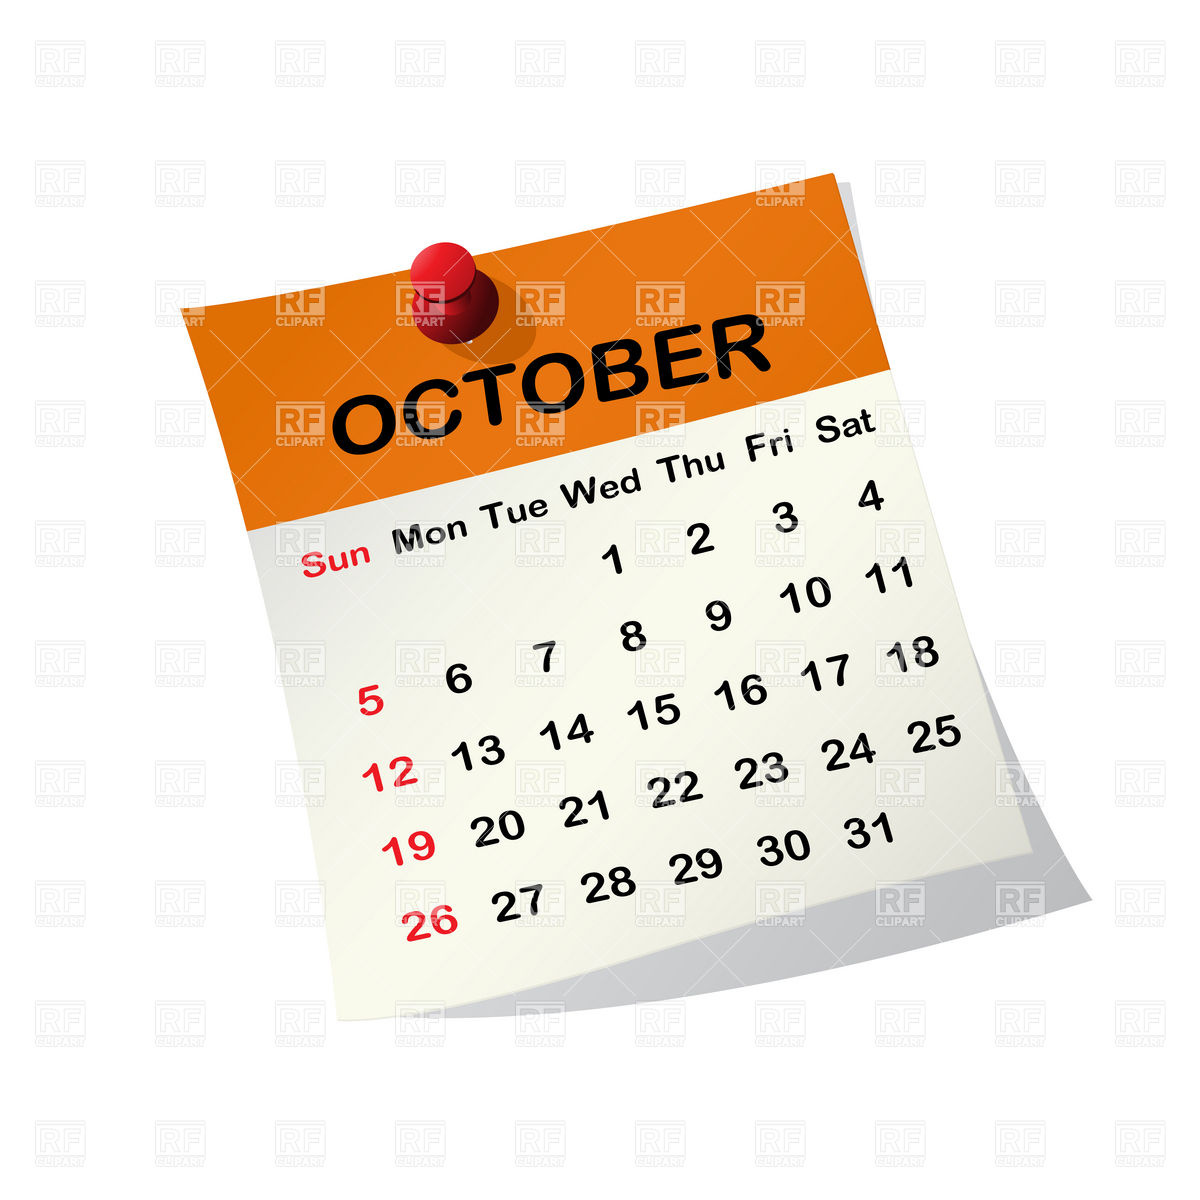 2014 October Calendar Clip Art